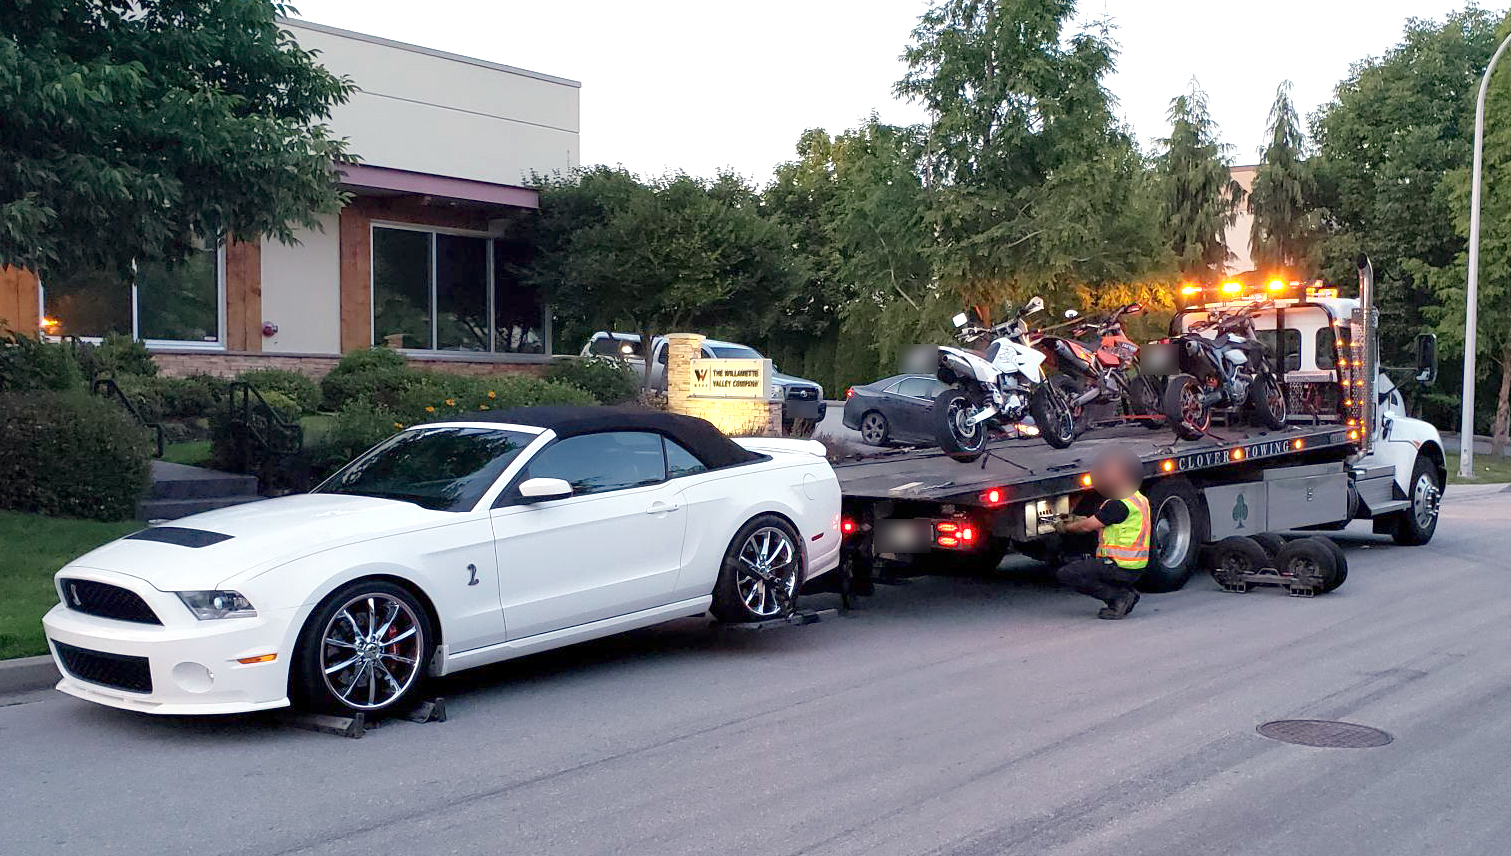 Nine vehicles seized during traffic enforcement in South Surrey